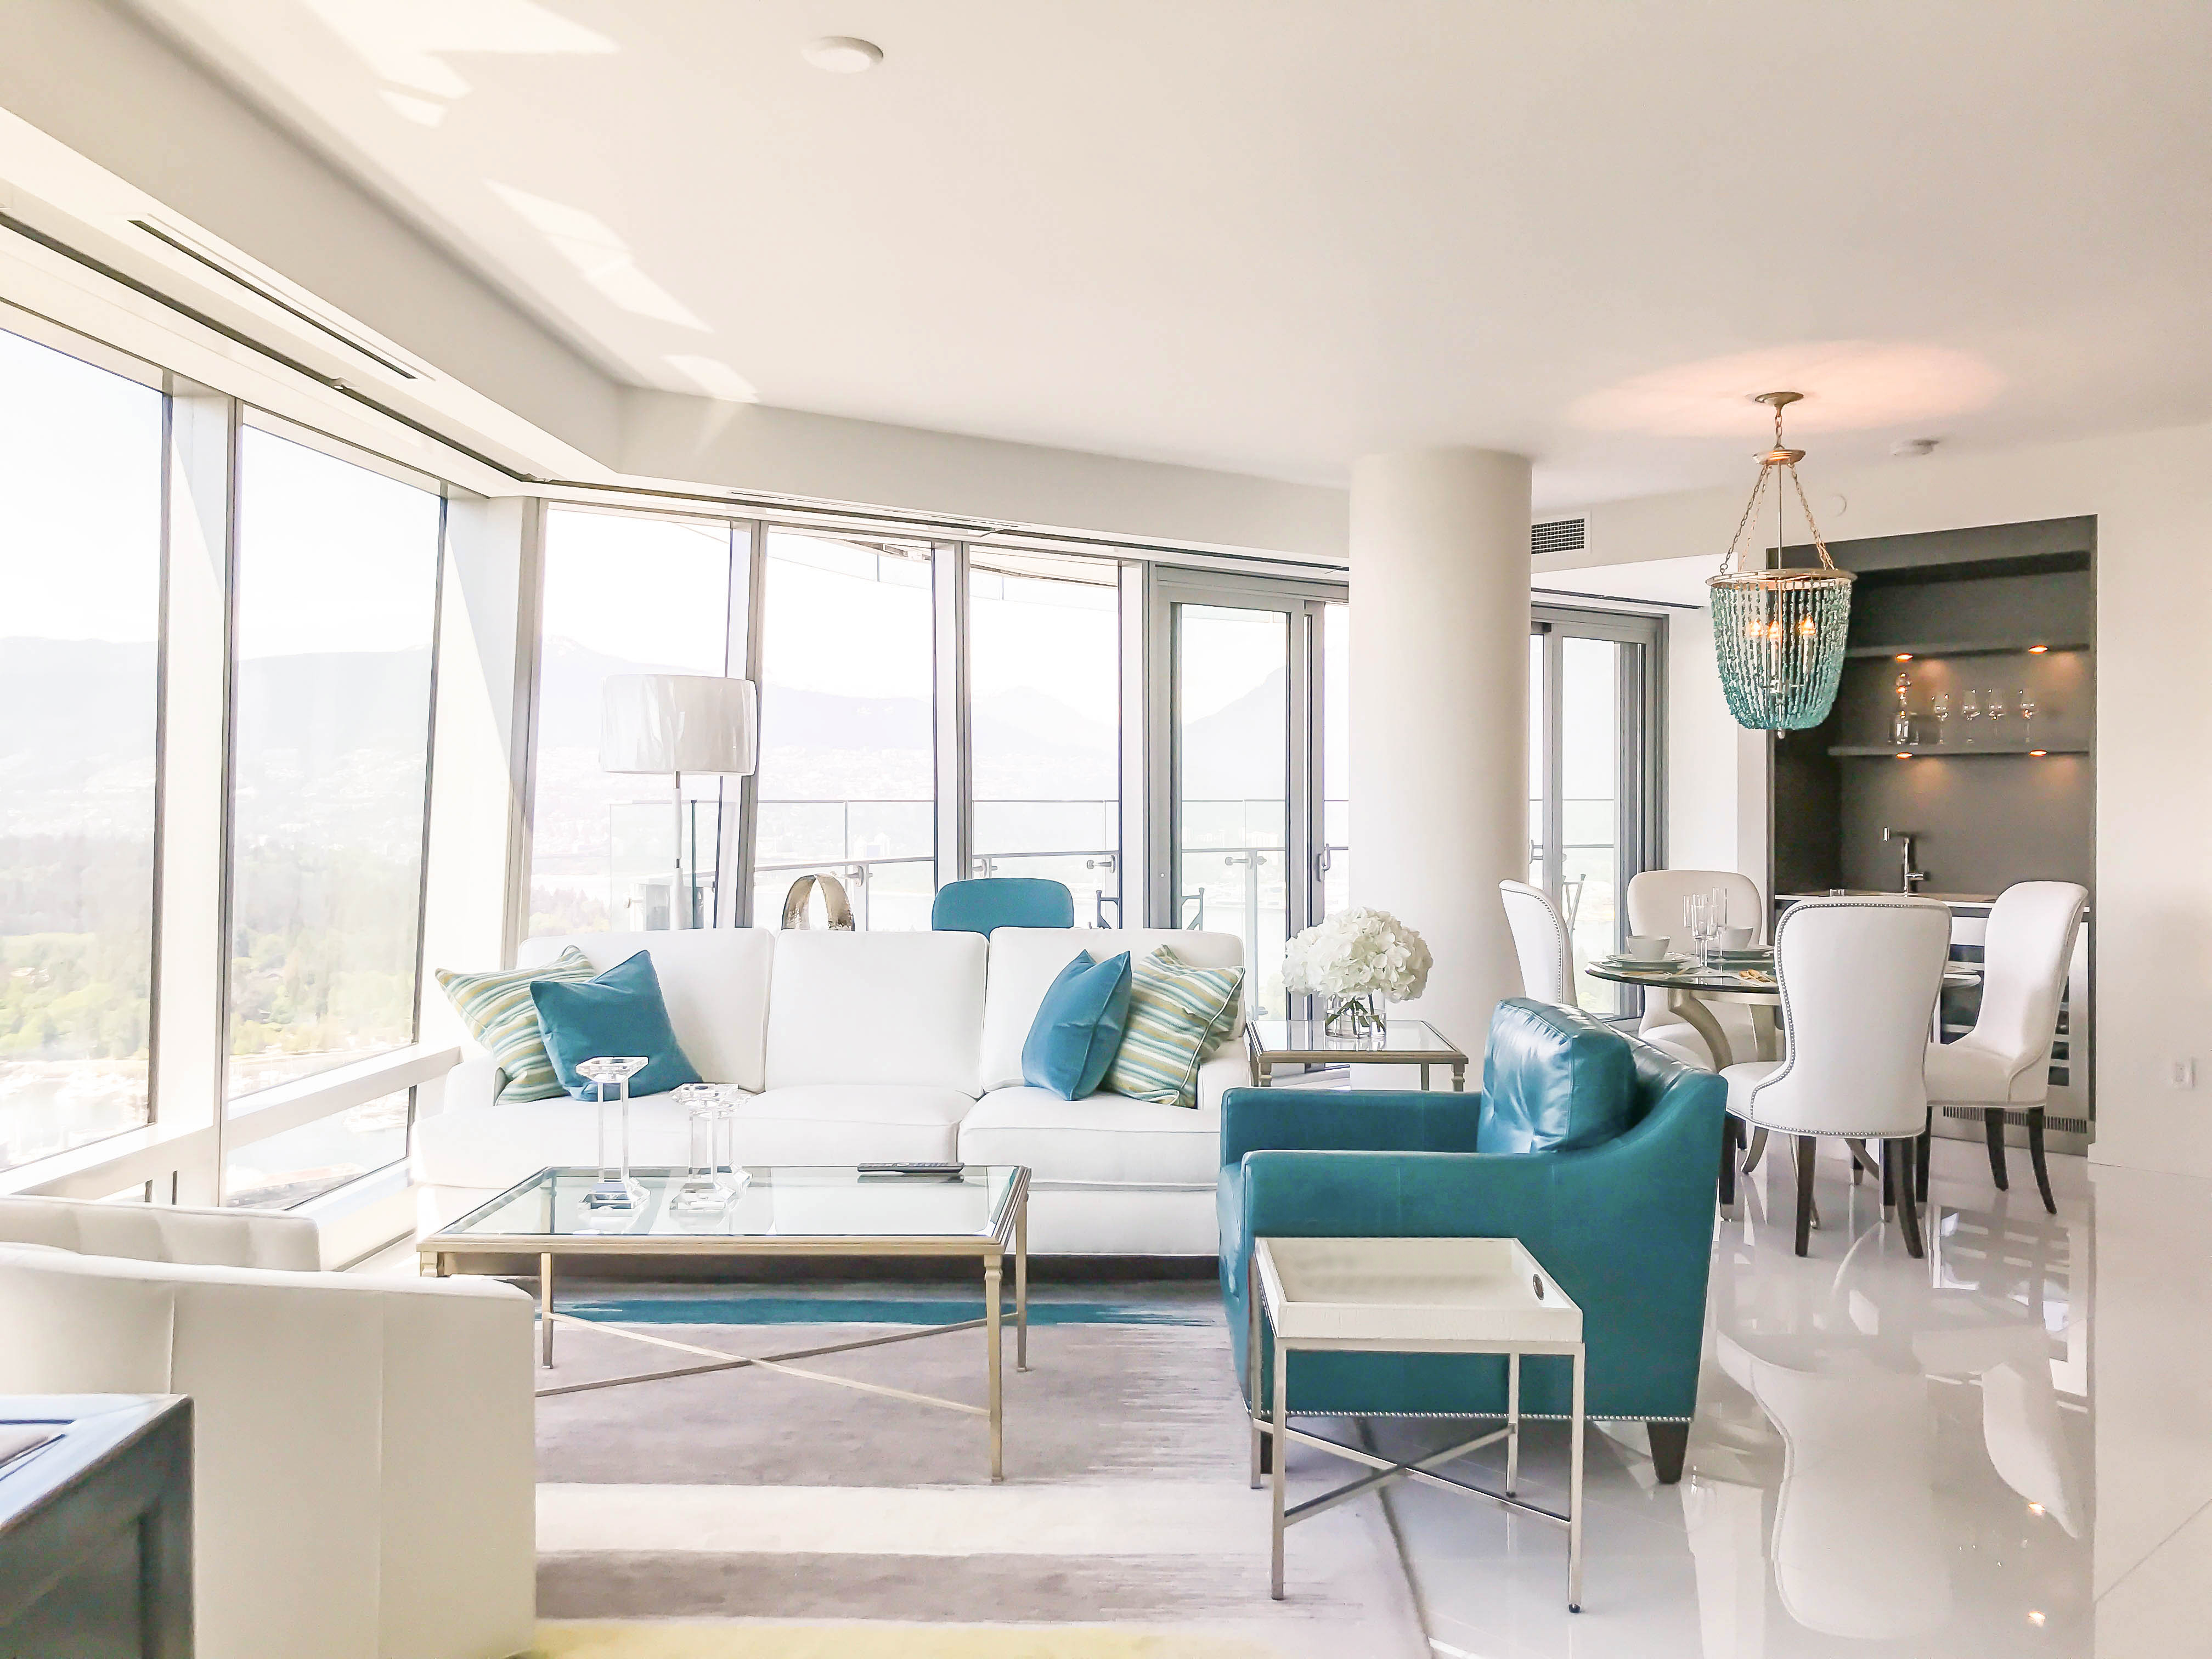 FULLY FURNISHED TWO BEDROOM PROPERTY IN THE LUXURIOUS TRUMP RESIDENCES VANCOUVER